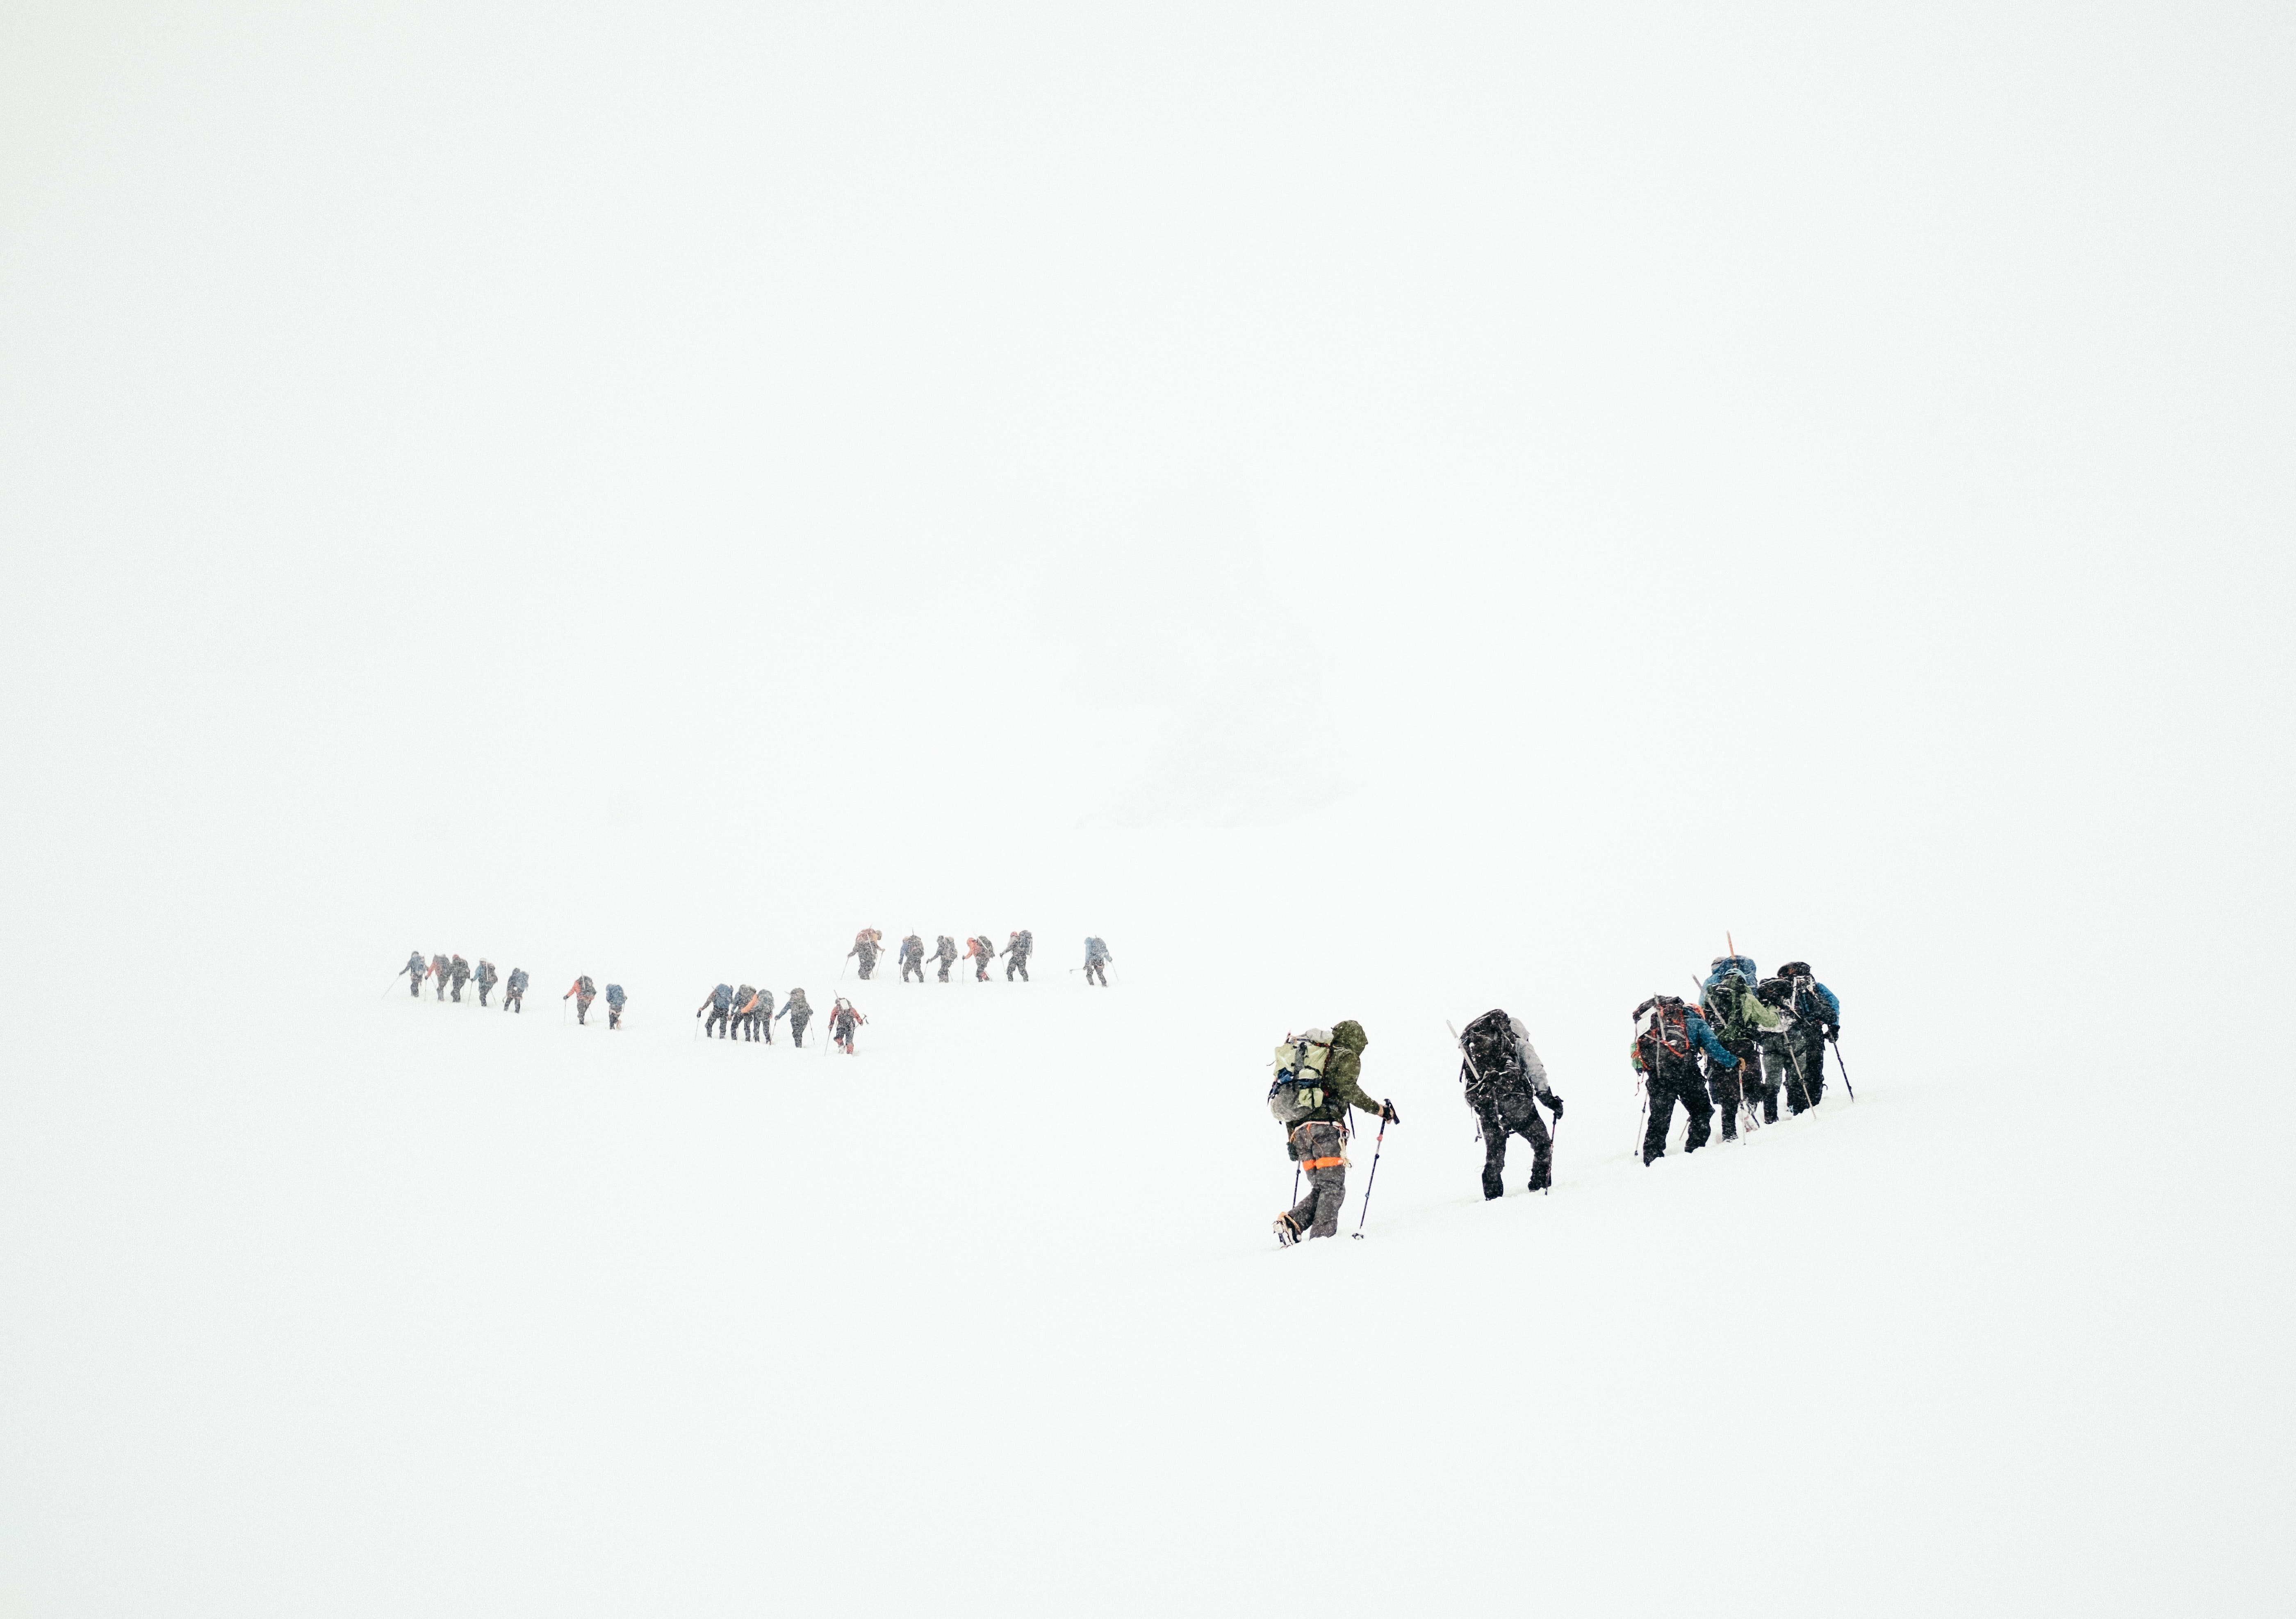 group of mountaineers hiking on snowy mountain